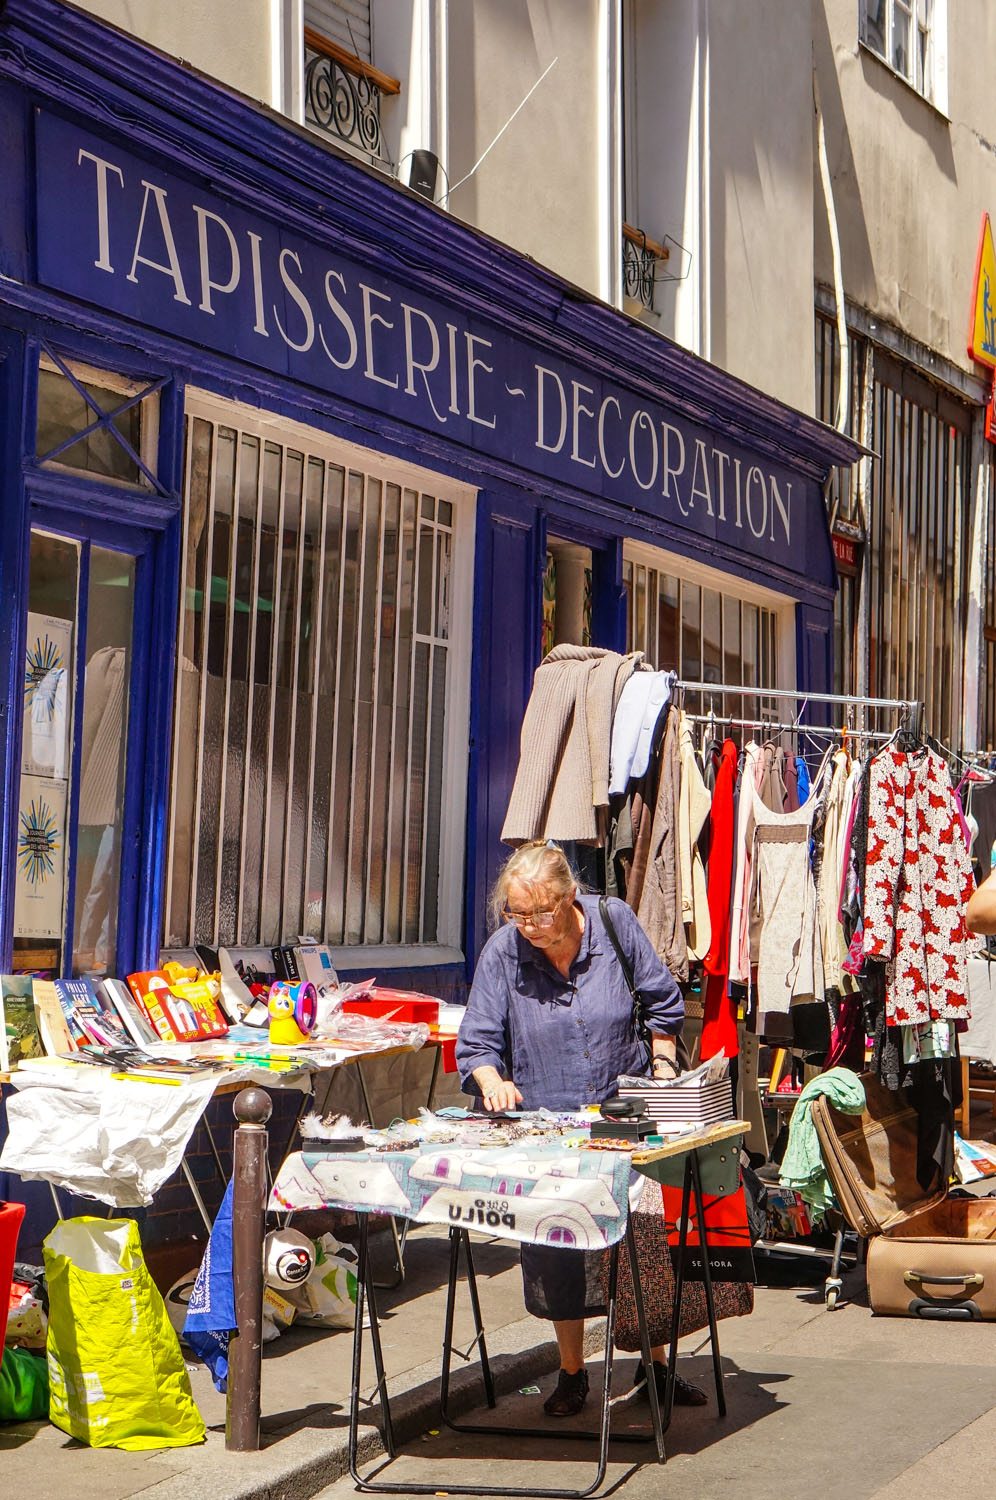 place sainte-marthe, vide-grenier paris, brocante paris, puces paris, chiner à paris